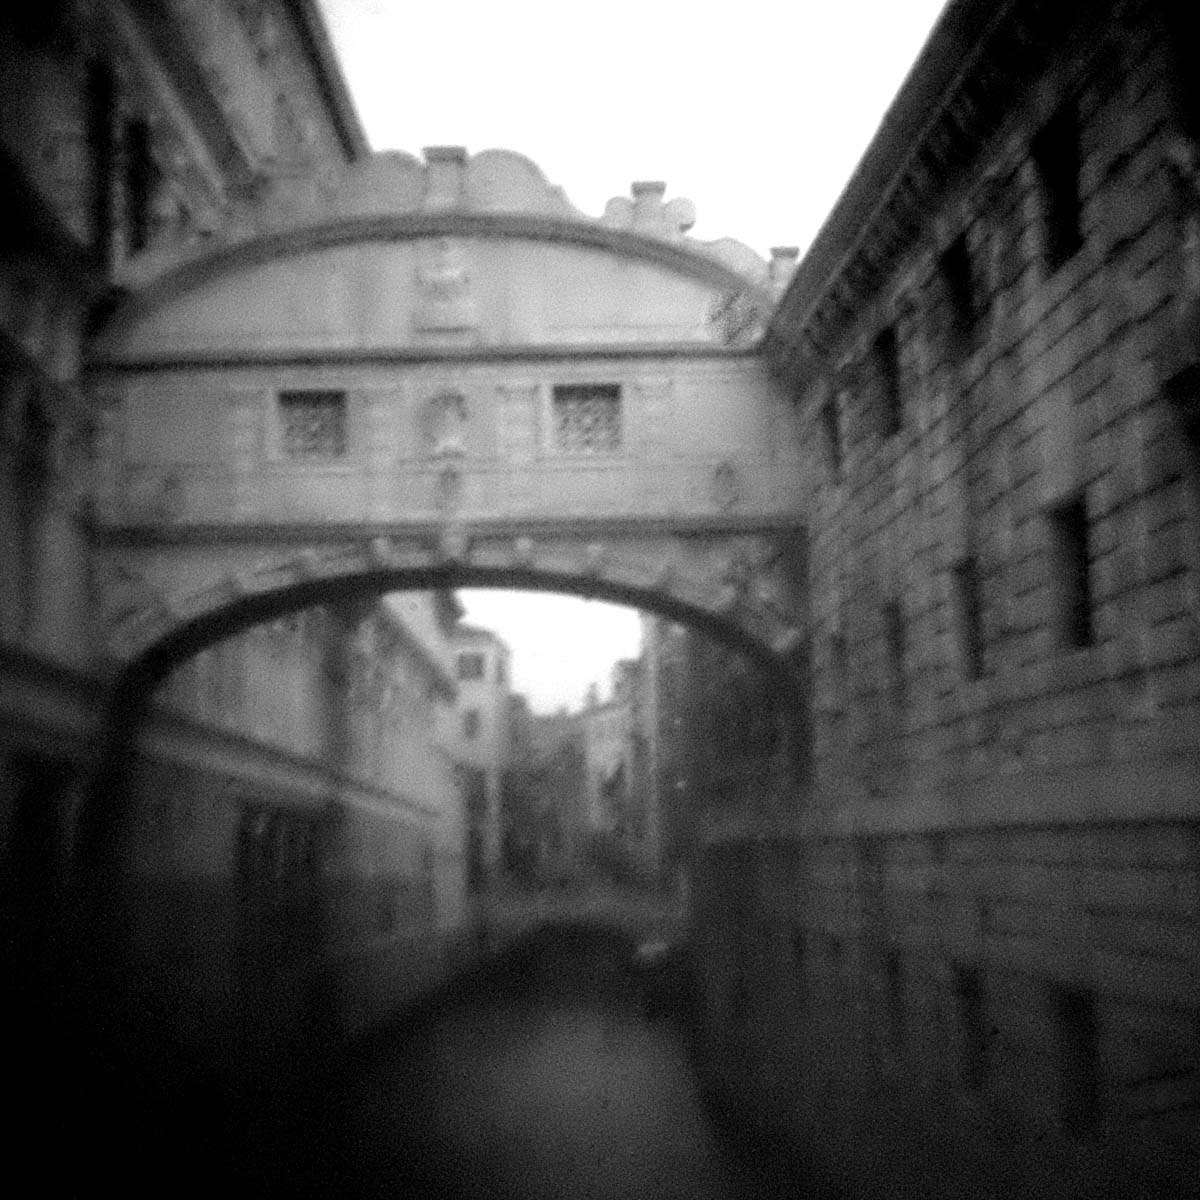 Venezia. Digital image on Fuji X-E2 modified to shoot like a pinhole camera.